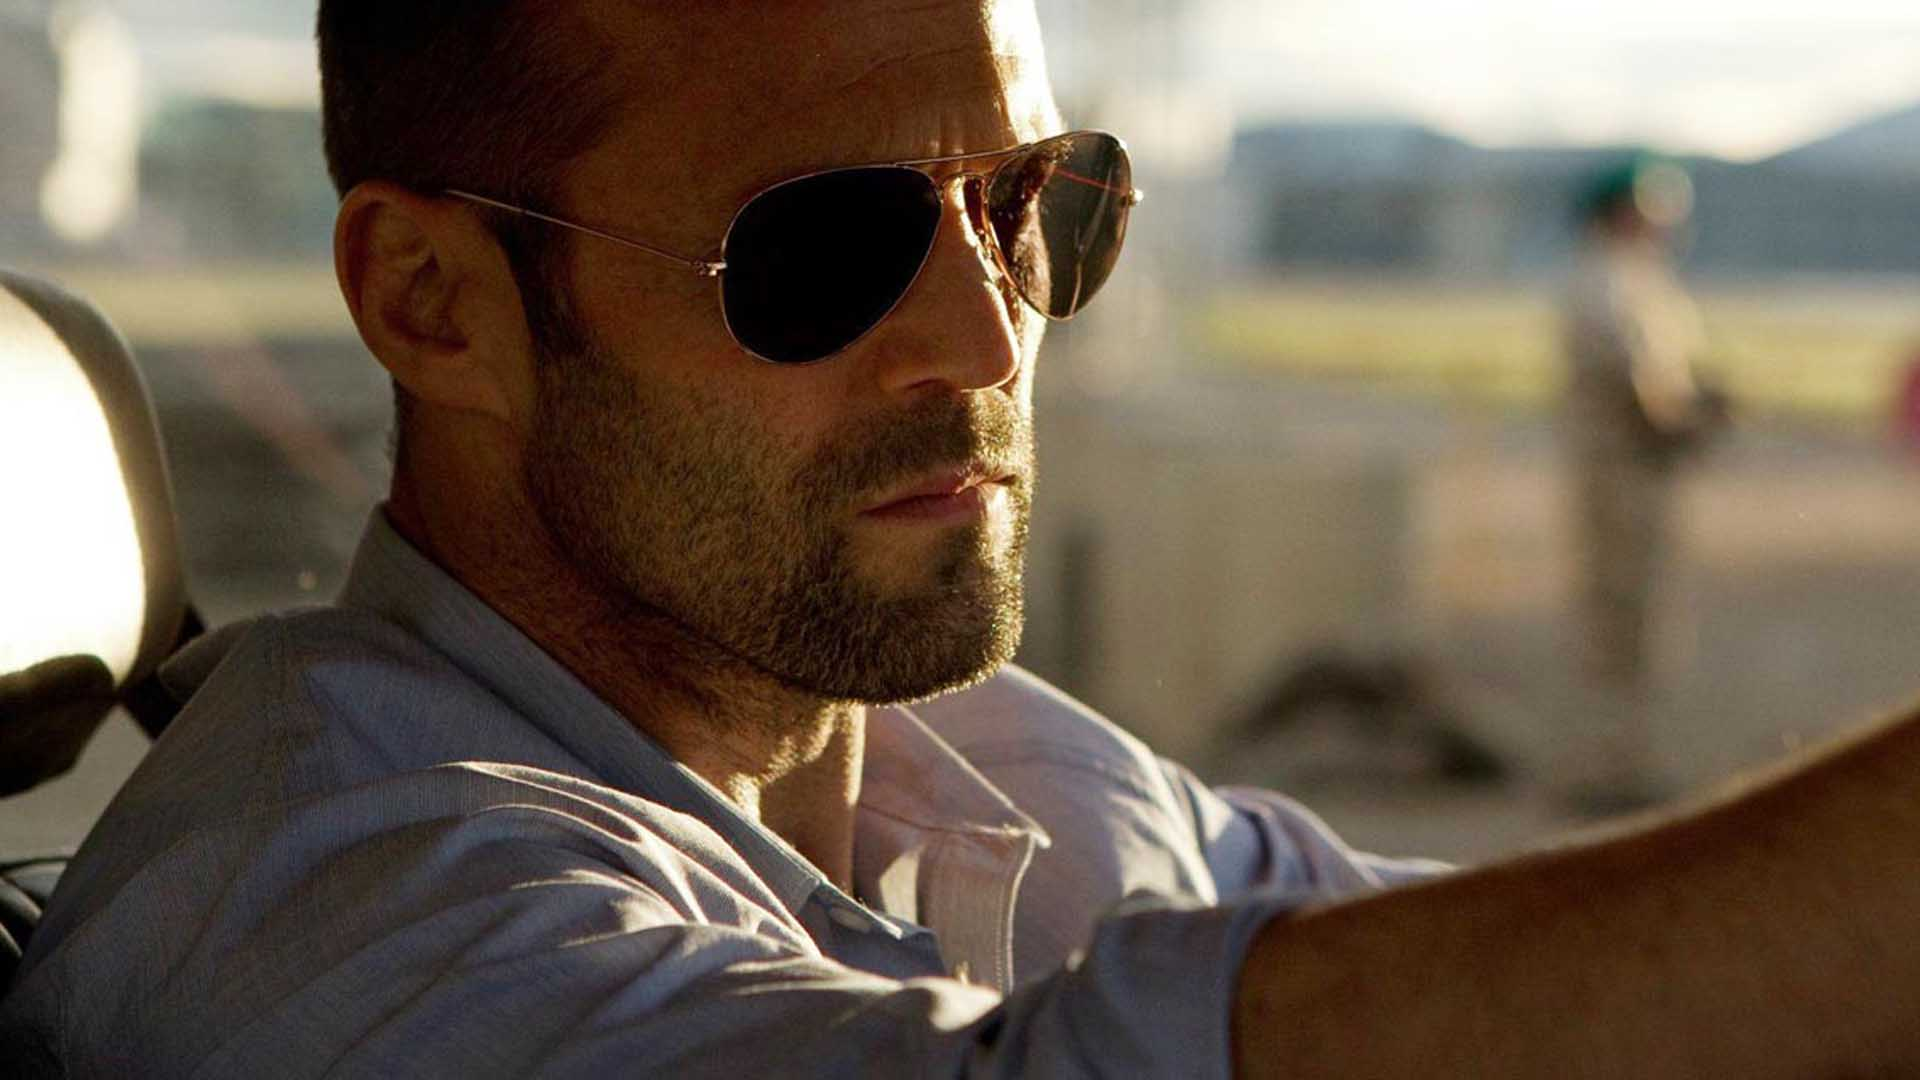 Jason Statham Wallpaper 1920x1080 | Wallpapers 2014 | Wallpapers 2014